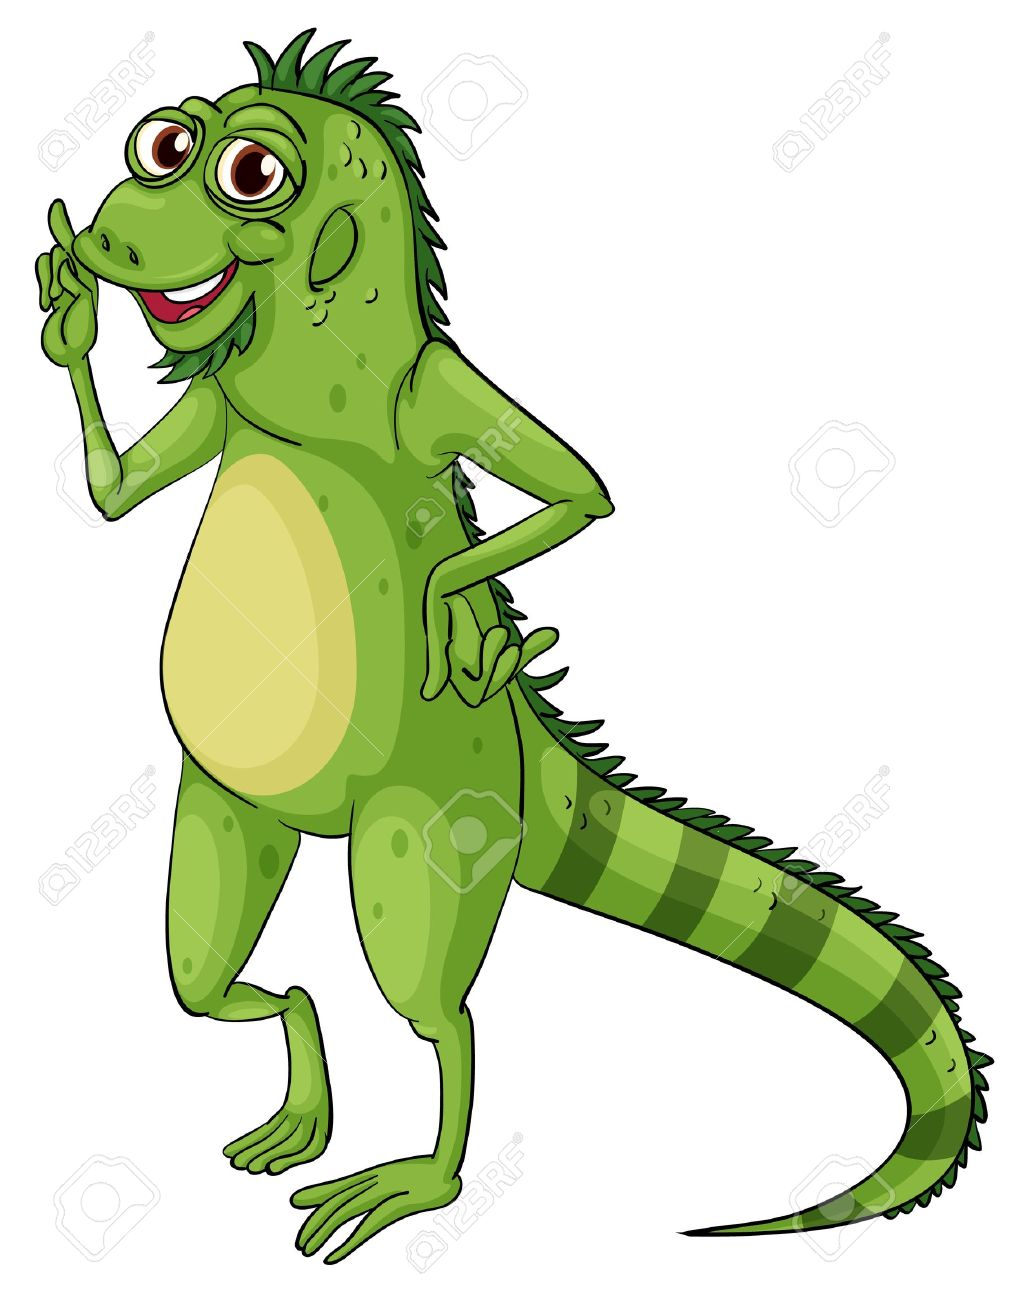 Green iguana on a white background Stock Vector - 13858172